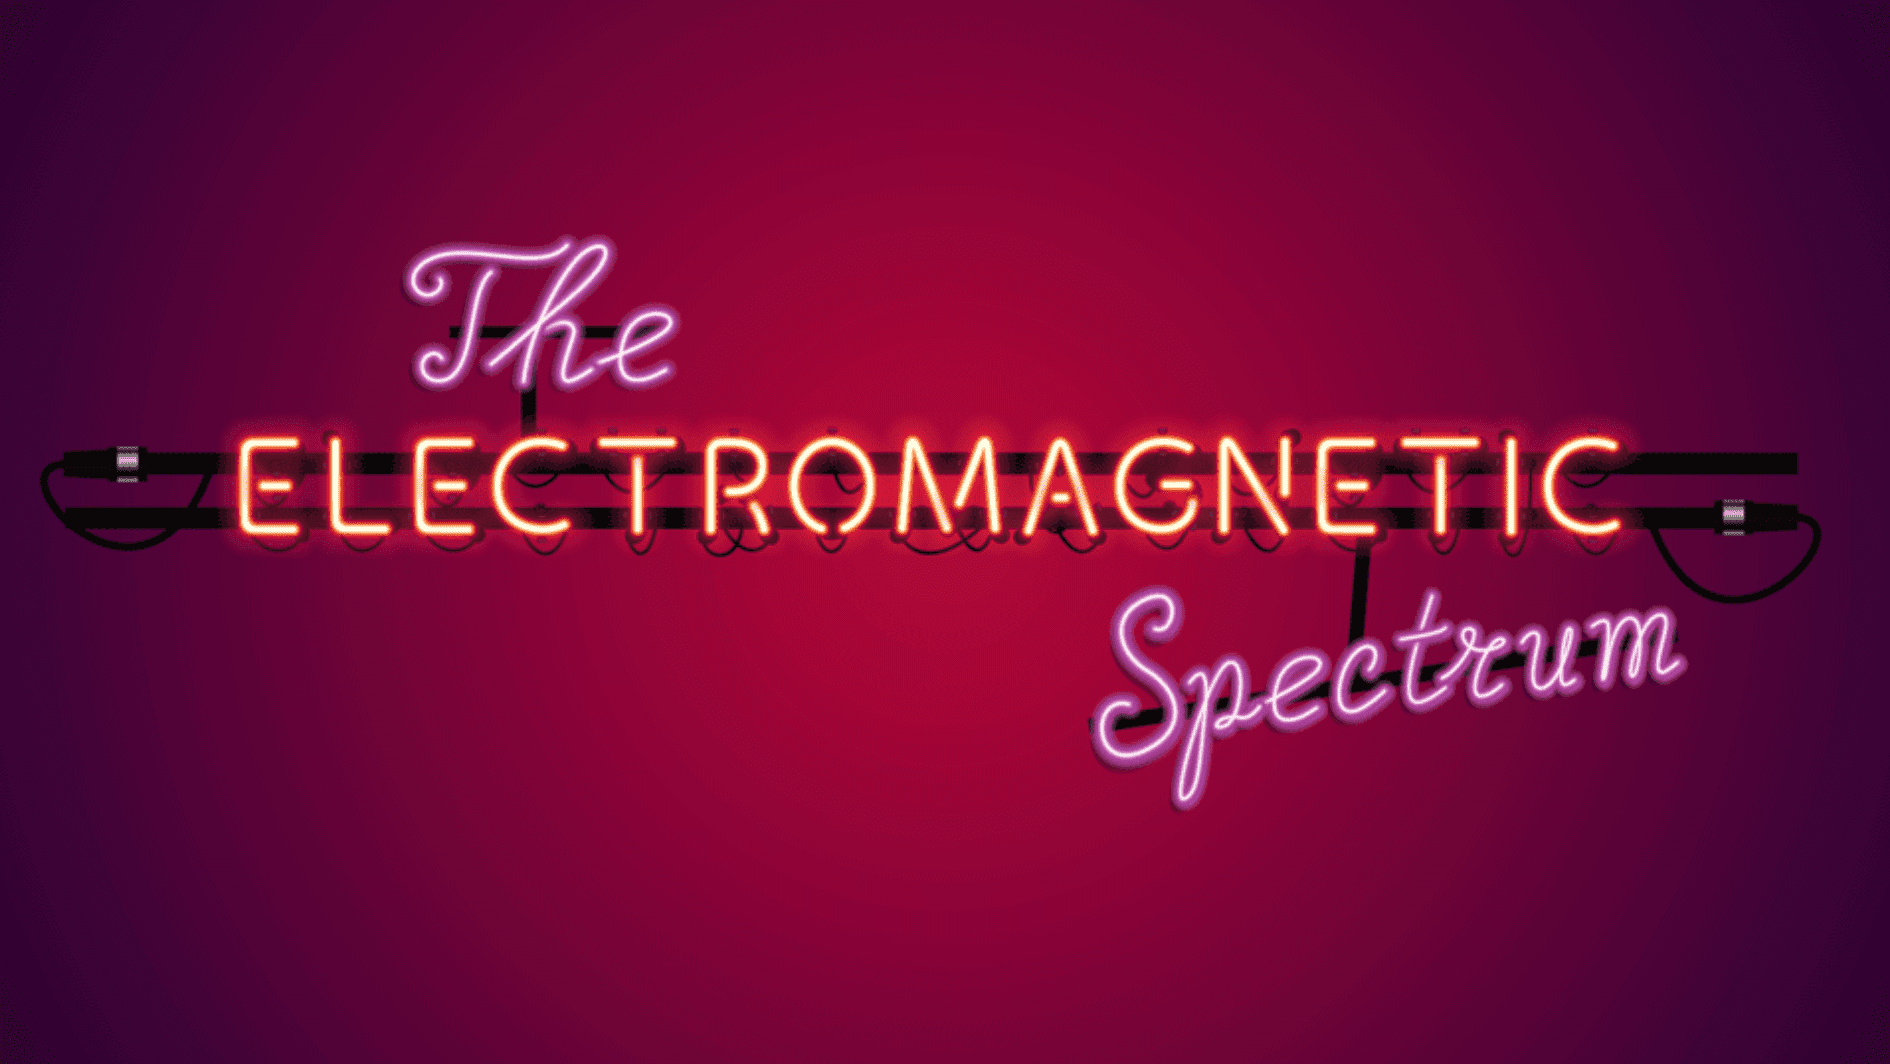 Year 9 - The Electromagnetic Spectrum Presentation-image